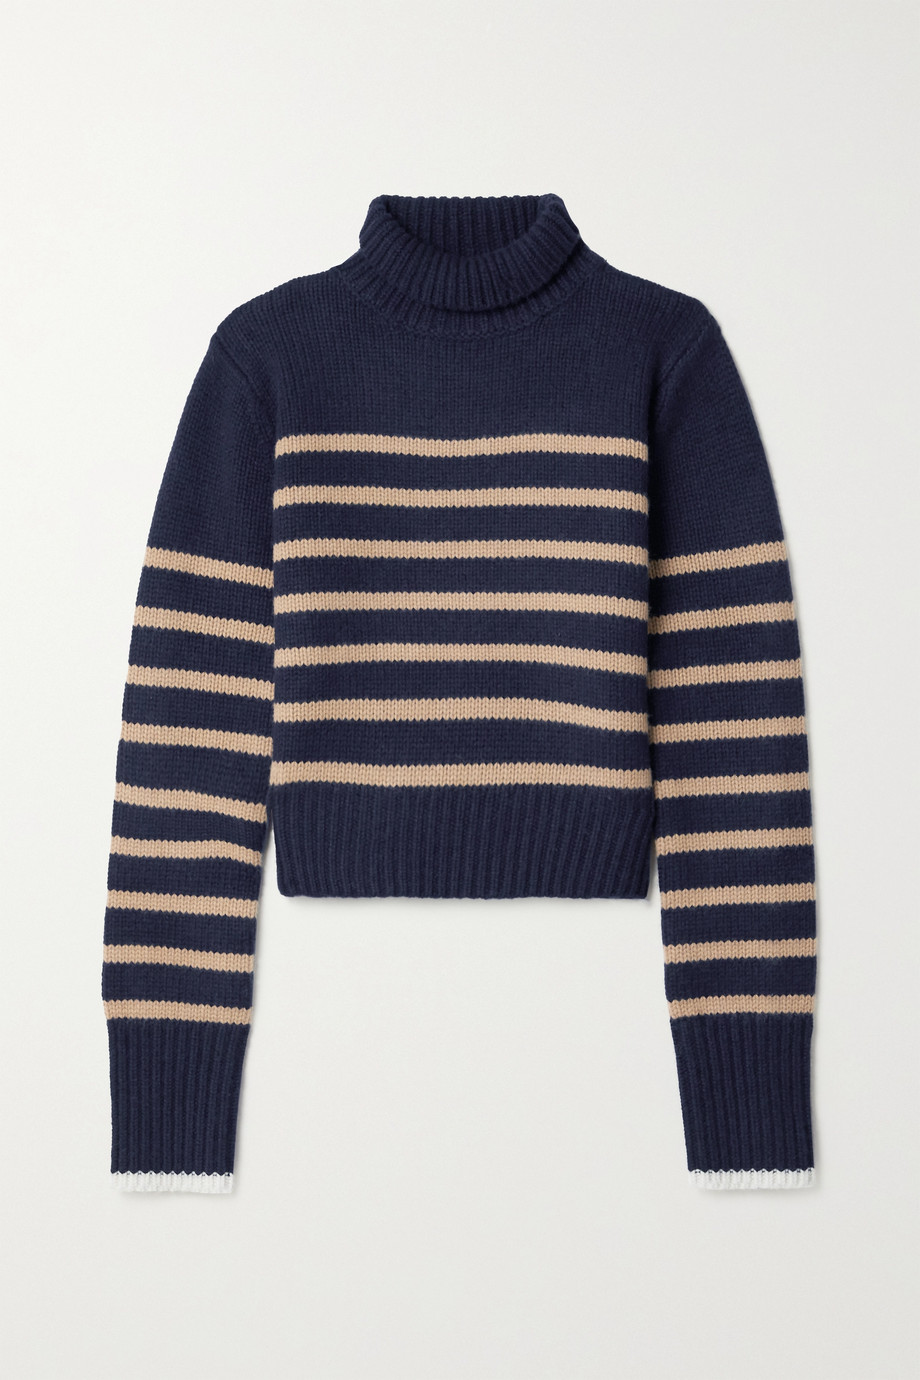 La Ligne Mini Marin striped wool and cashmere-blend turtleneck sweater